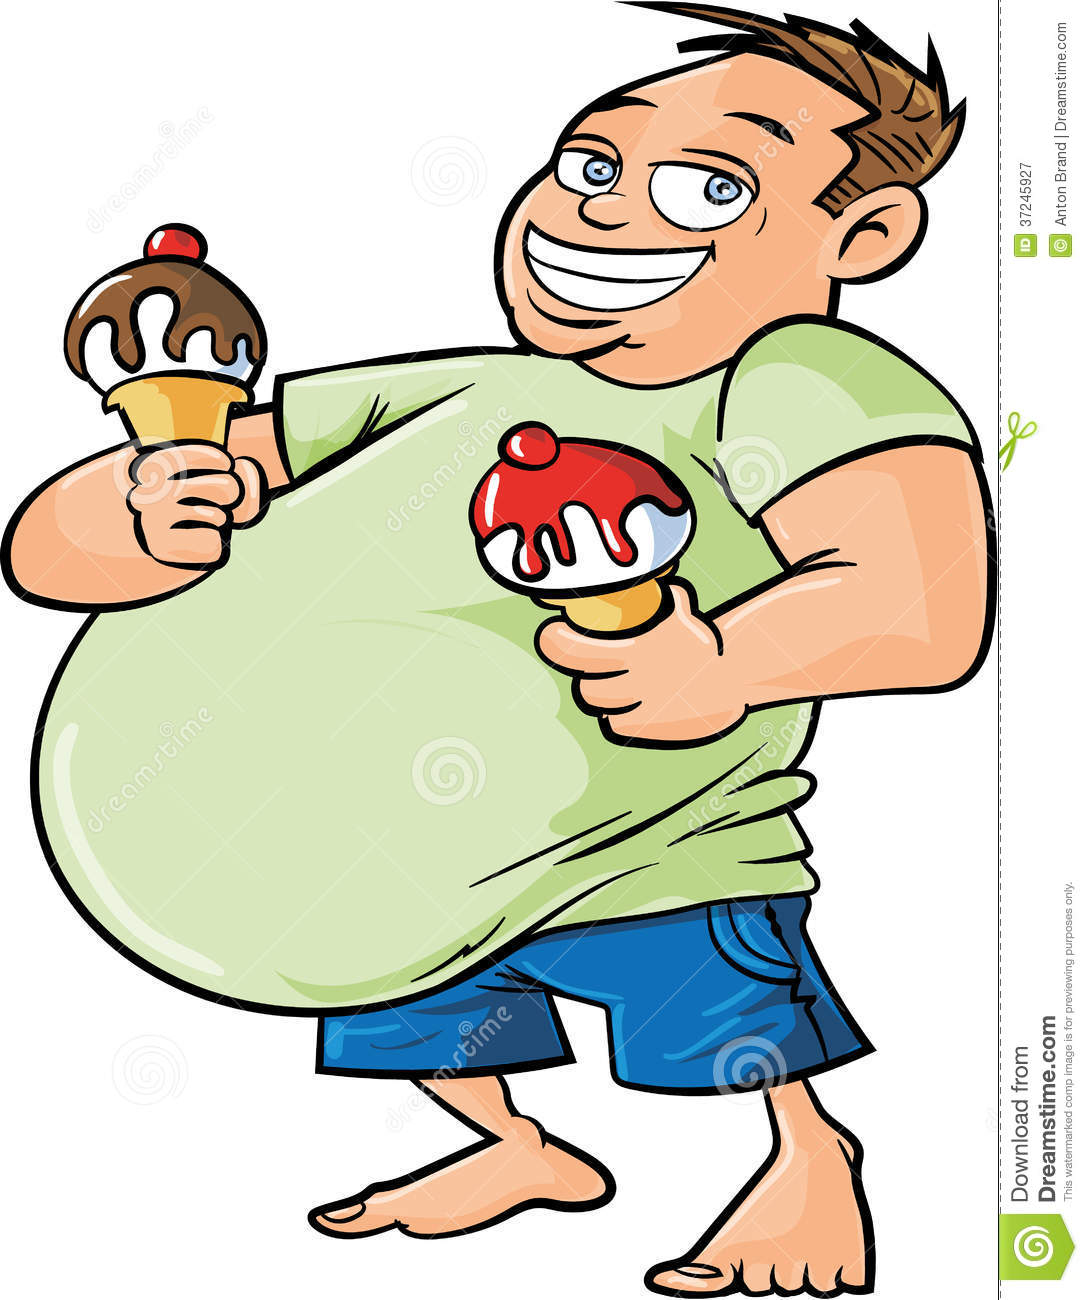 Cartoon Overweight Man Holding Two Ice Creams Royalty Free Stock